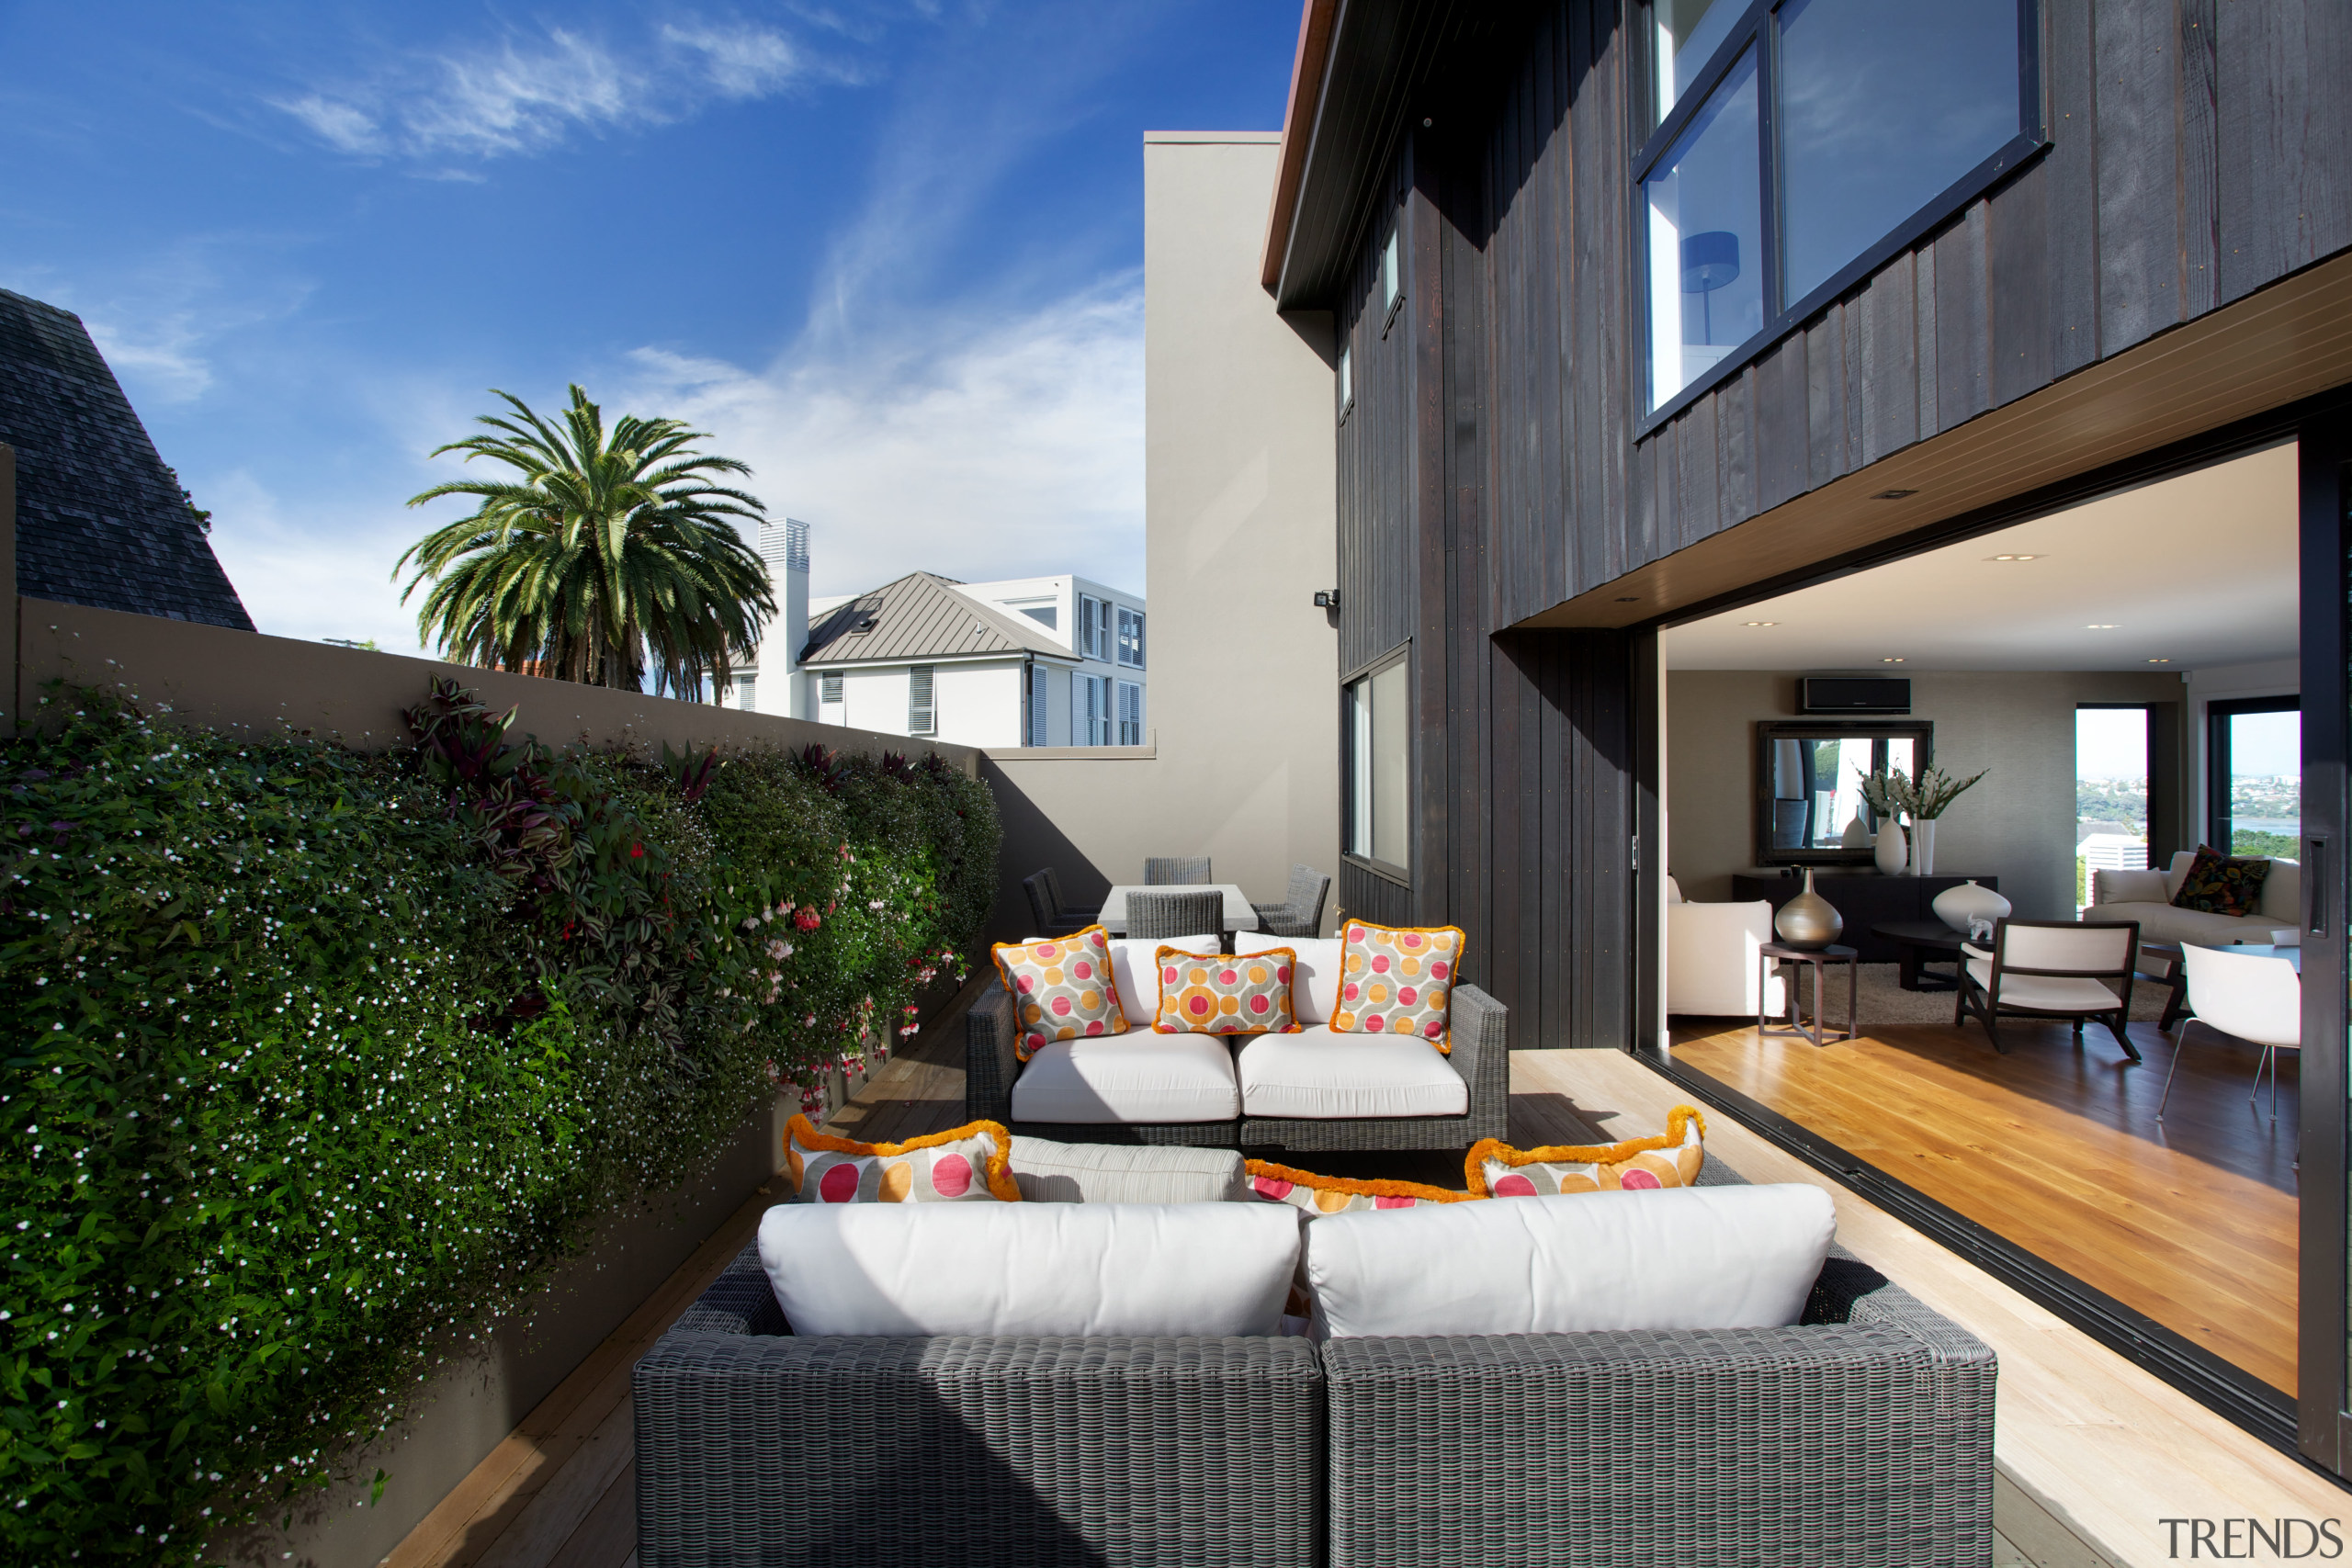 Indoor-outdoor living in this high-end townhouse designed by apartment, condominium, estate, home, house, interior design, penthouse apartment, property, real estate, resort, villa, black, gray